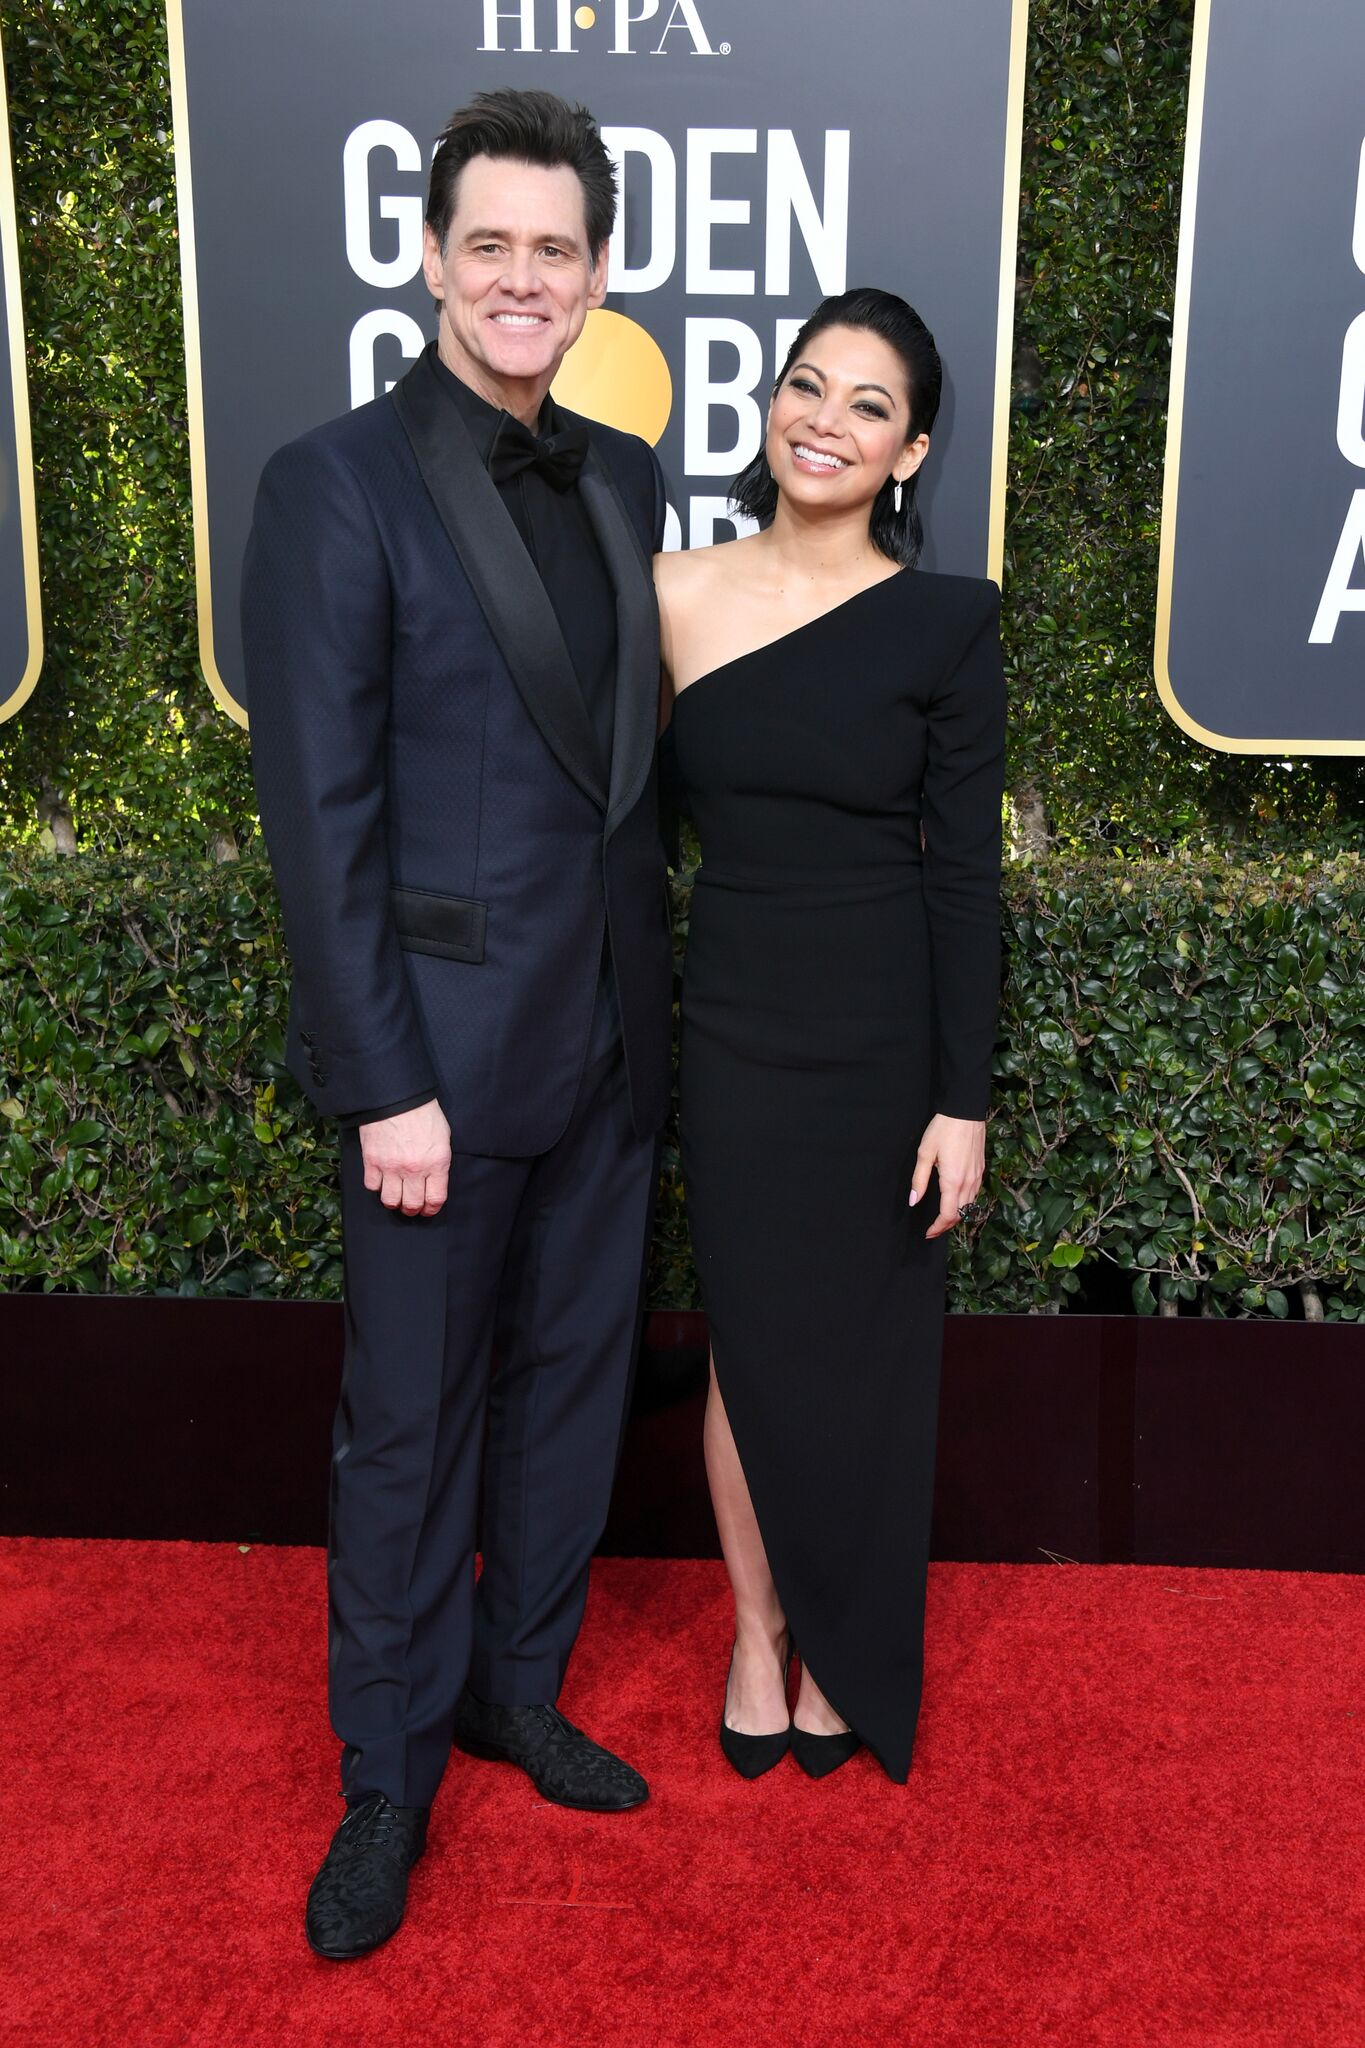 Jim Carrey and Ginger Gonzaga attend the 76th Annual Golden Globe Awards at The Beverly Hilton Hotel | Getty Images